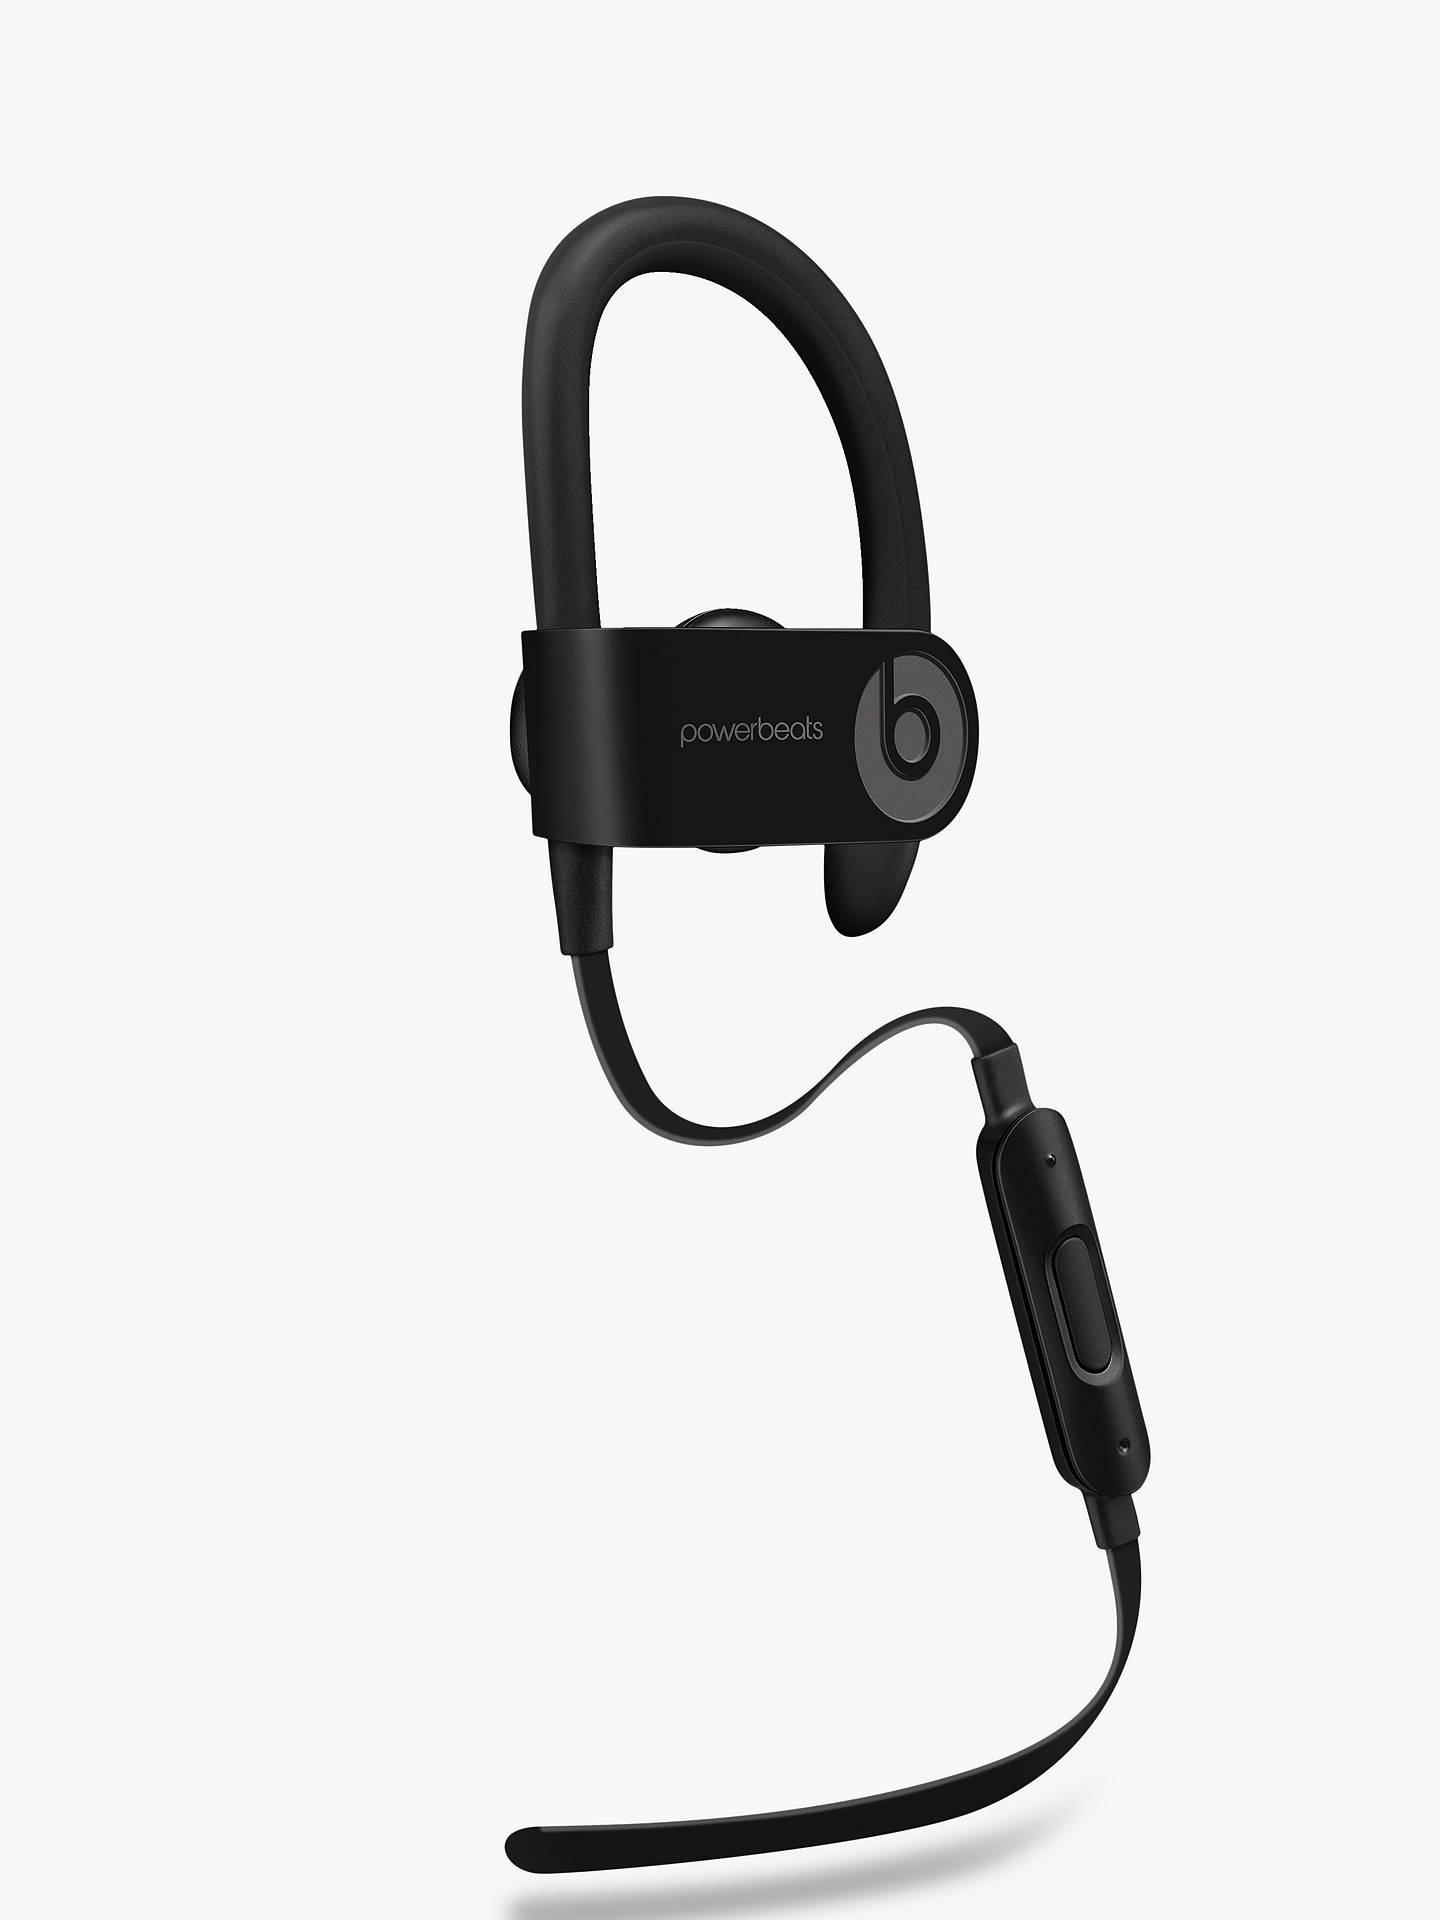 ... BuyPowerbeats³ Wireless Bluetooth In-Ear Sport Headphones with  Mic Remote e8165170a8